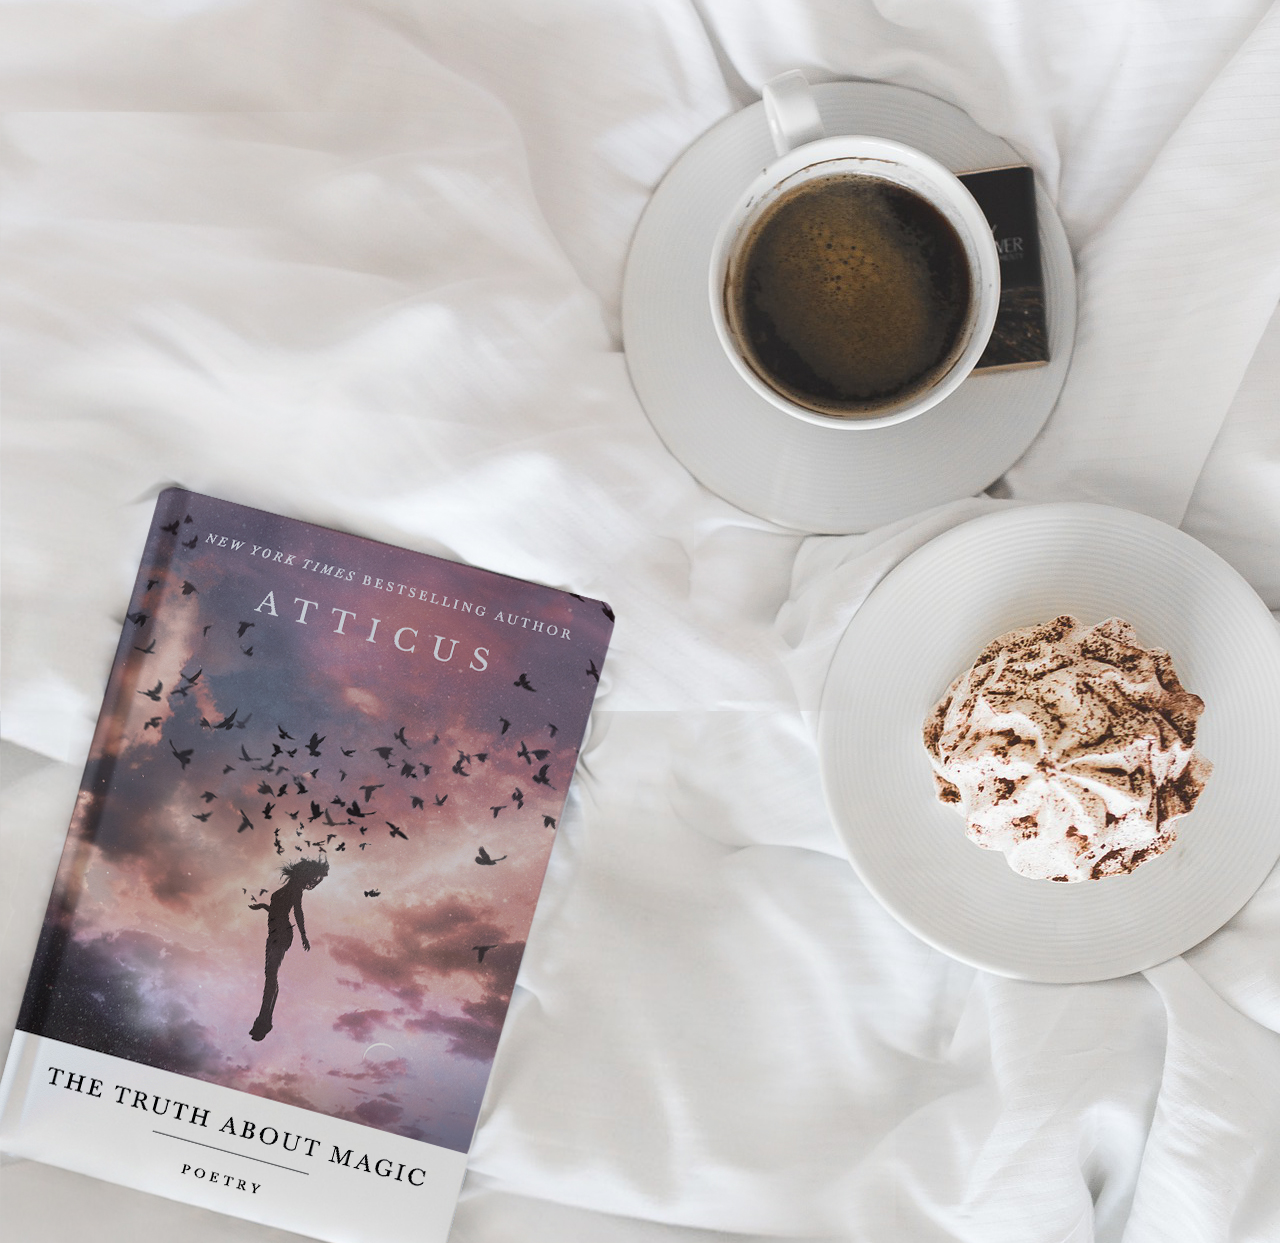 THE TRUTH ABOUT MAGIC - The Truth About Magic builds on the pain and joys of romance explored in Atticus' New York Times Bestseller, The Dark Between Stars, to take us on a vibrant and transcendent journey of self-discovery and purpose.